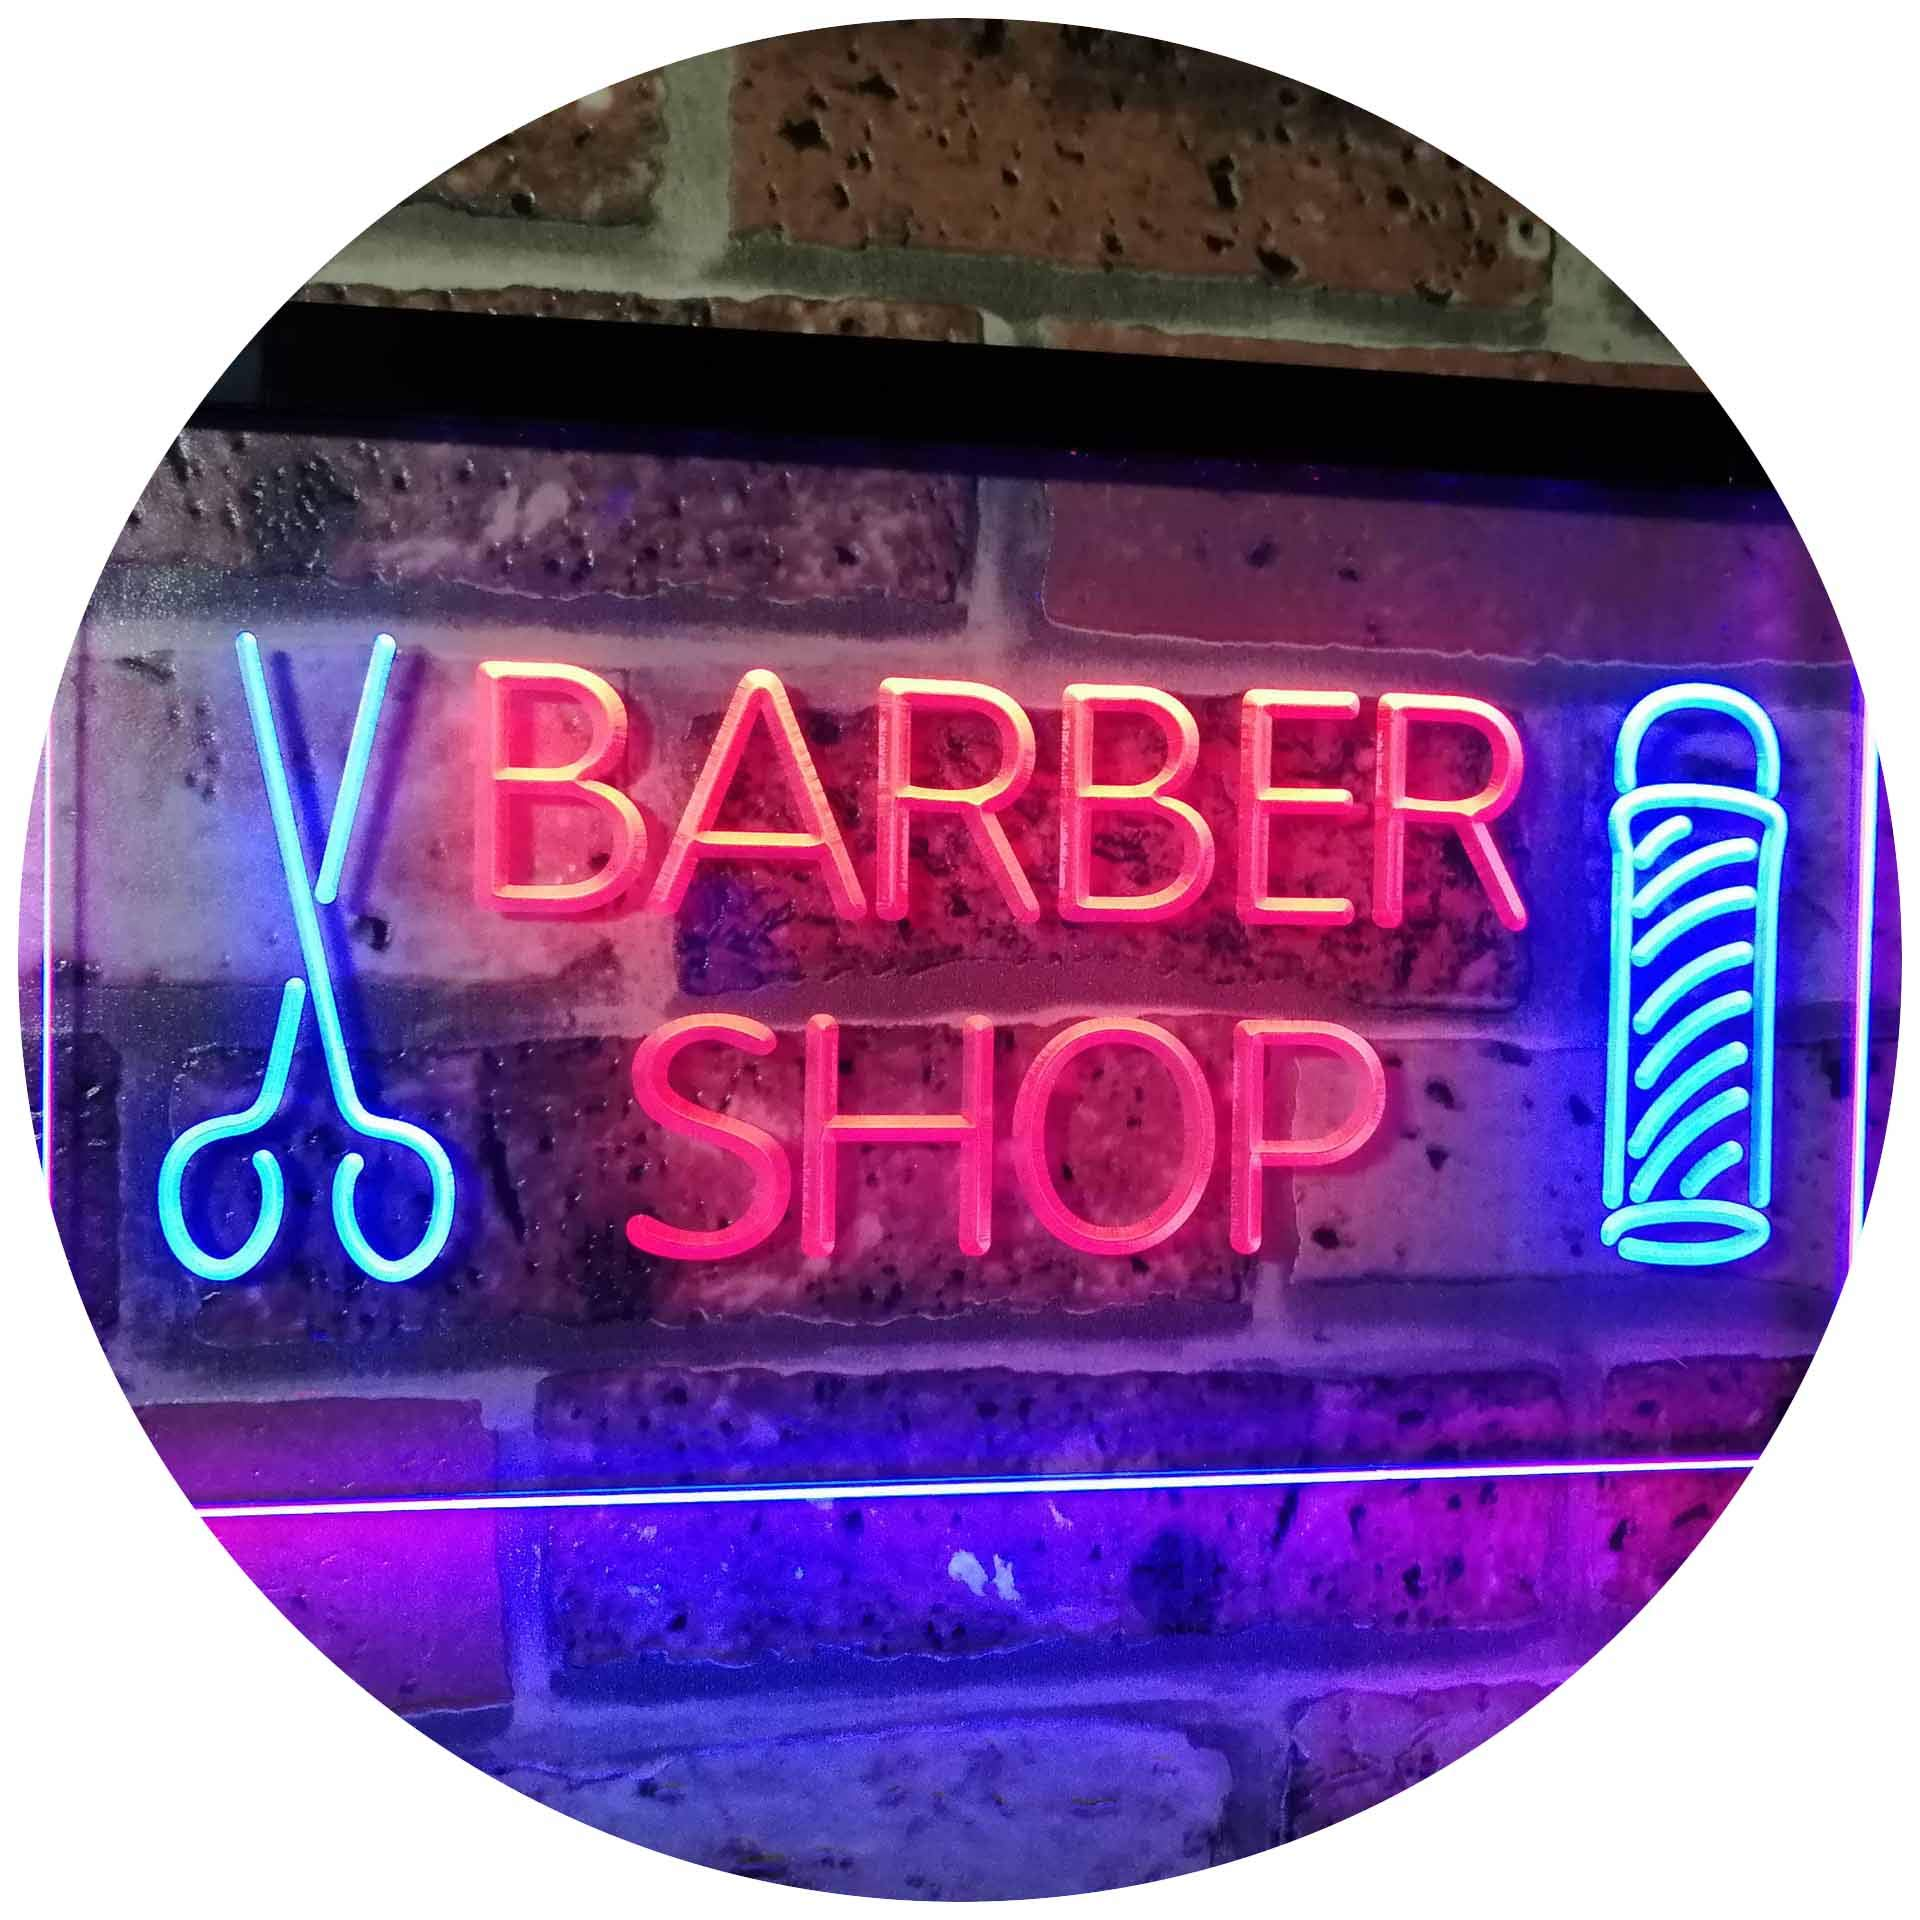 AdvpPro 2C Barber Shop Hair Cut Scissor Pole Display Dual Color LED Neon Sign Blue & Red 16'' x 12'' st6s43-i2044-br